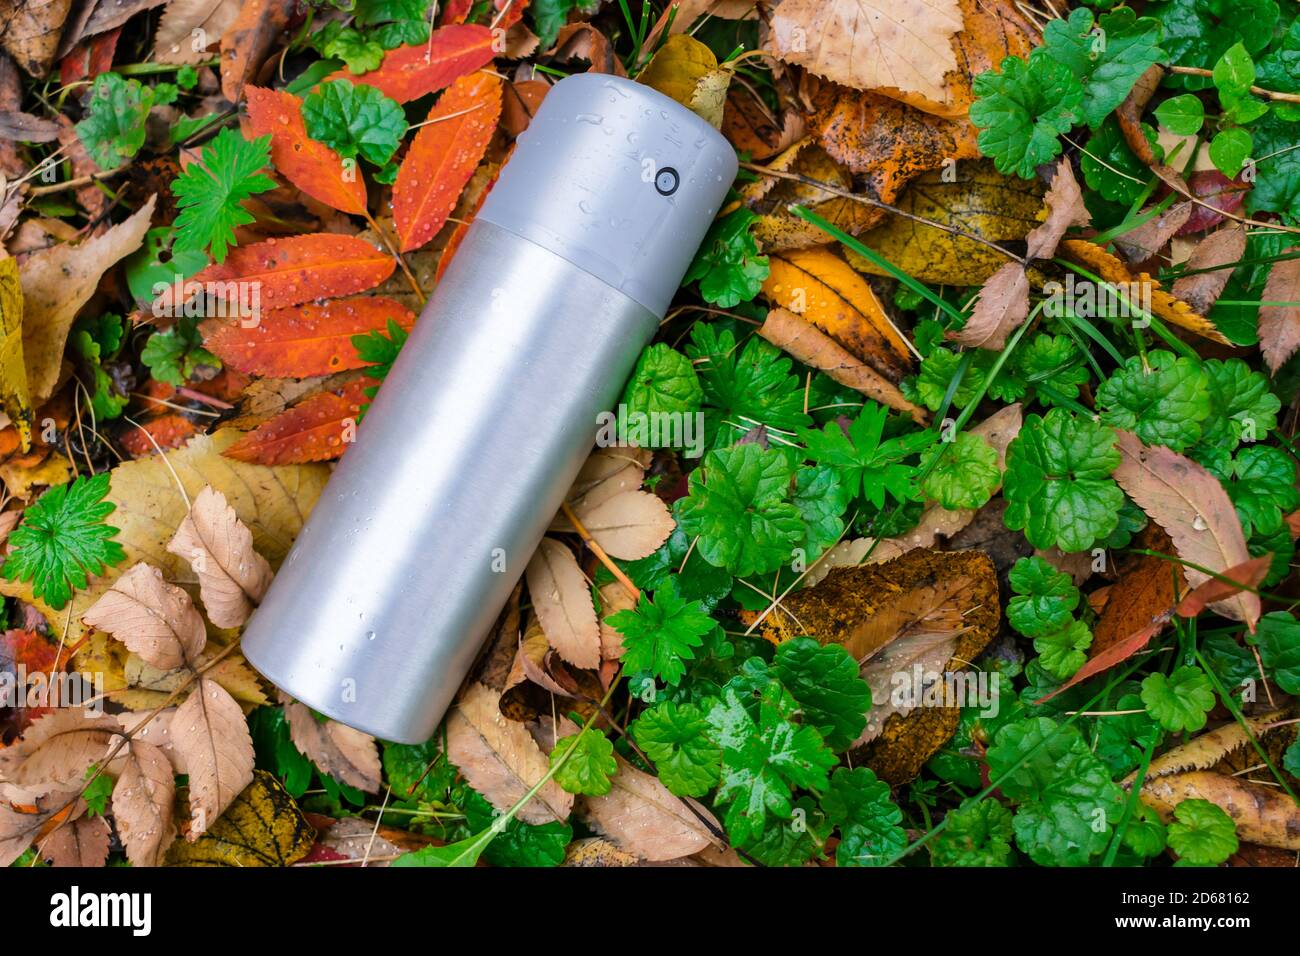 A can of deodorant or air freshener thrown out on the lawn in the autumn grass Stock Photo